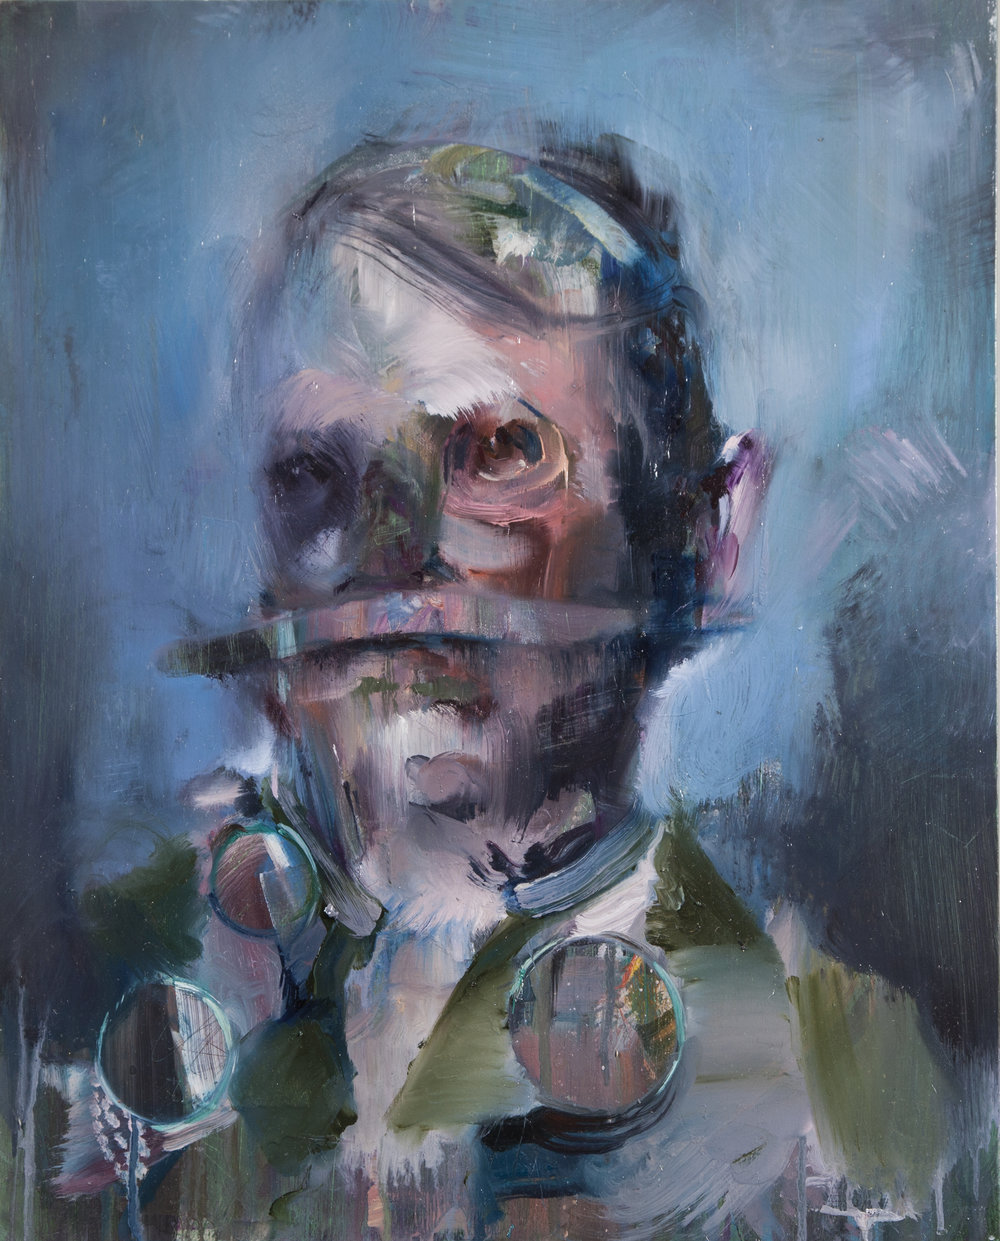 JO-Justine Otto, conquo, 50 x 40 cn, oil on wood, 2016.jpg